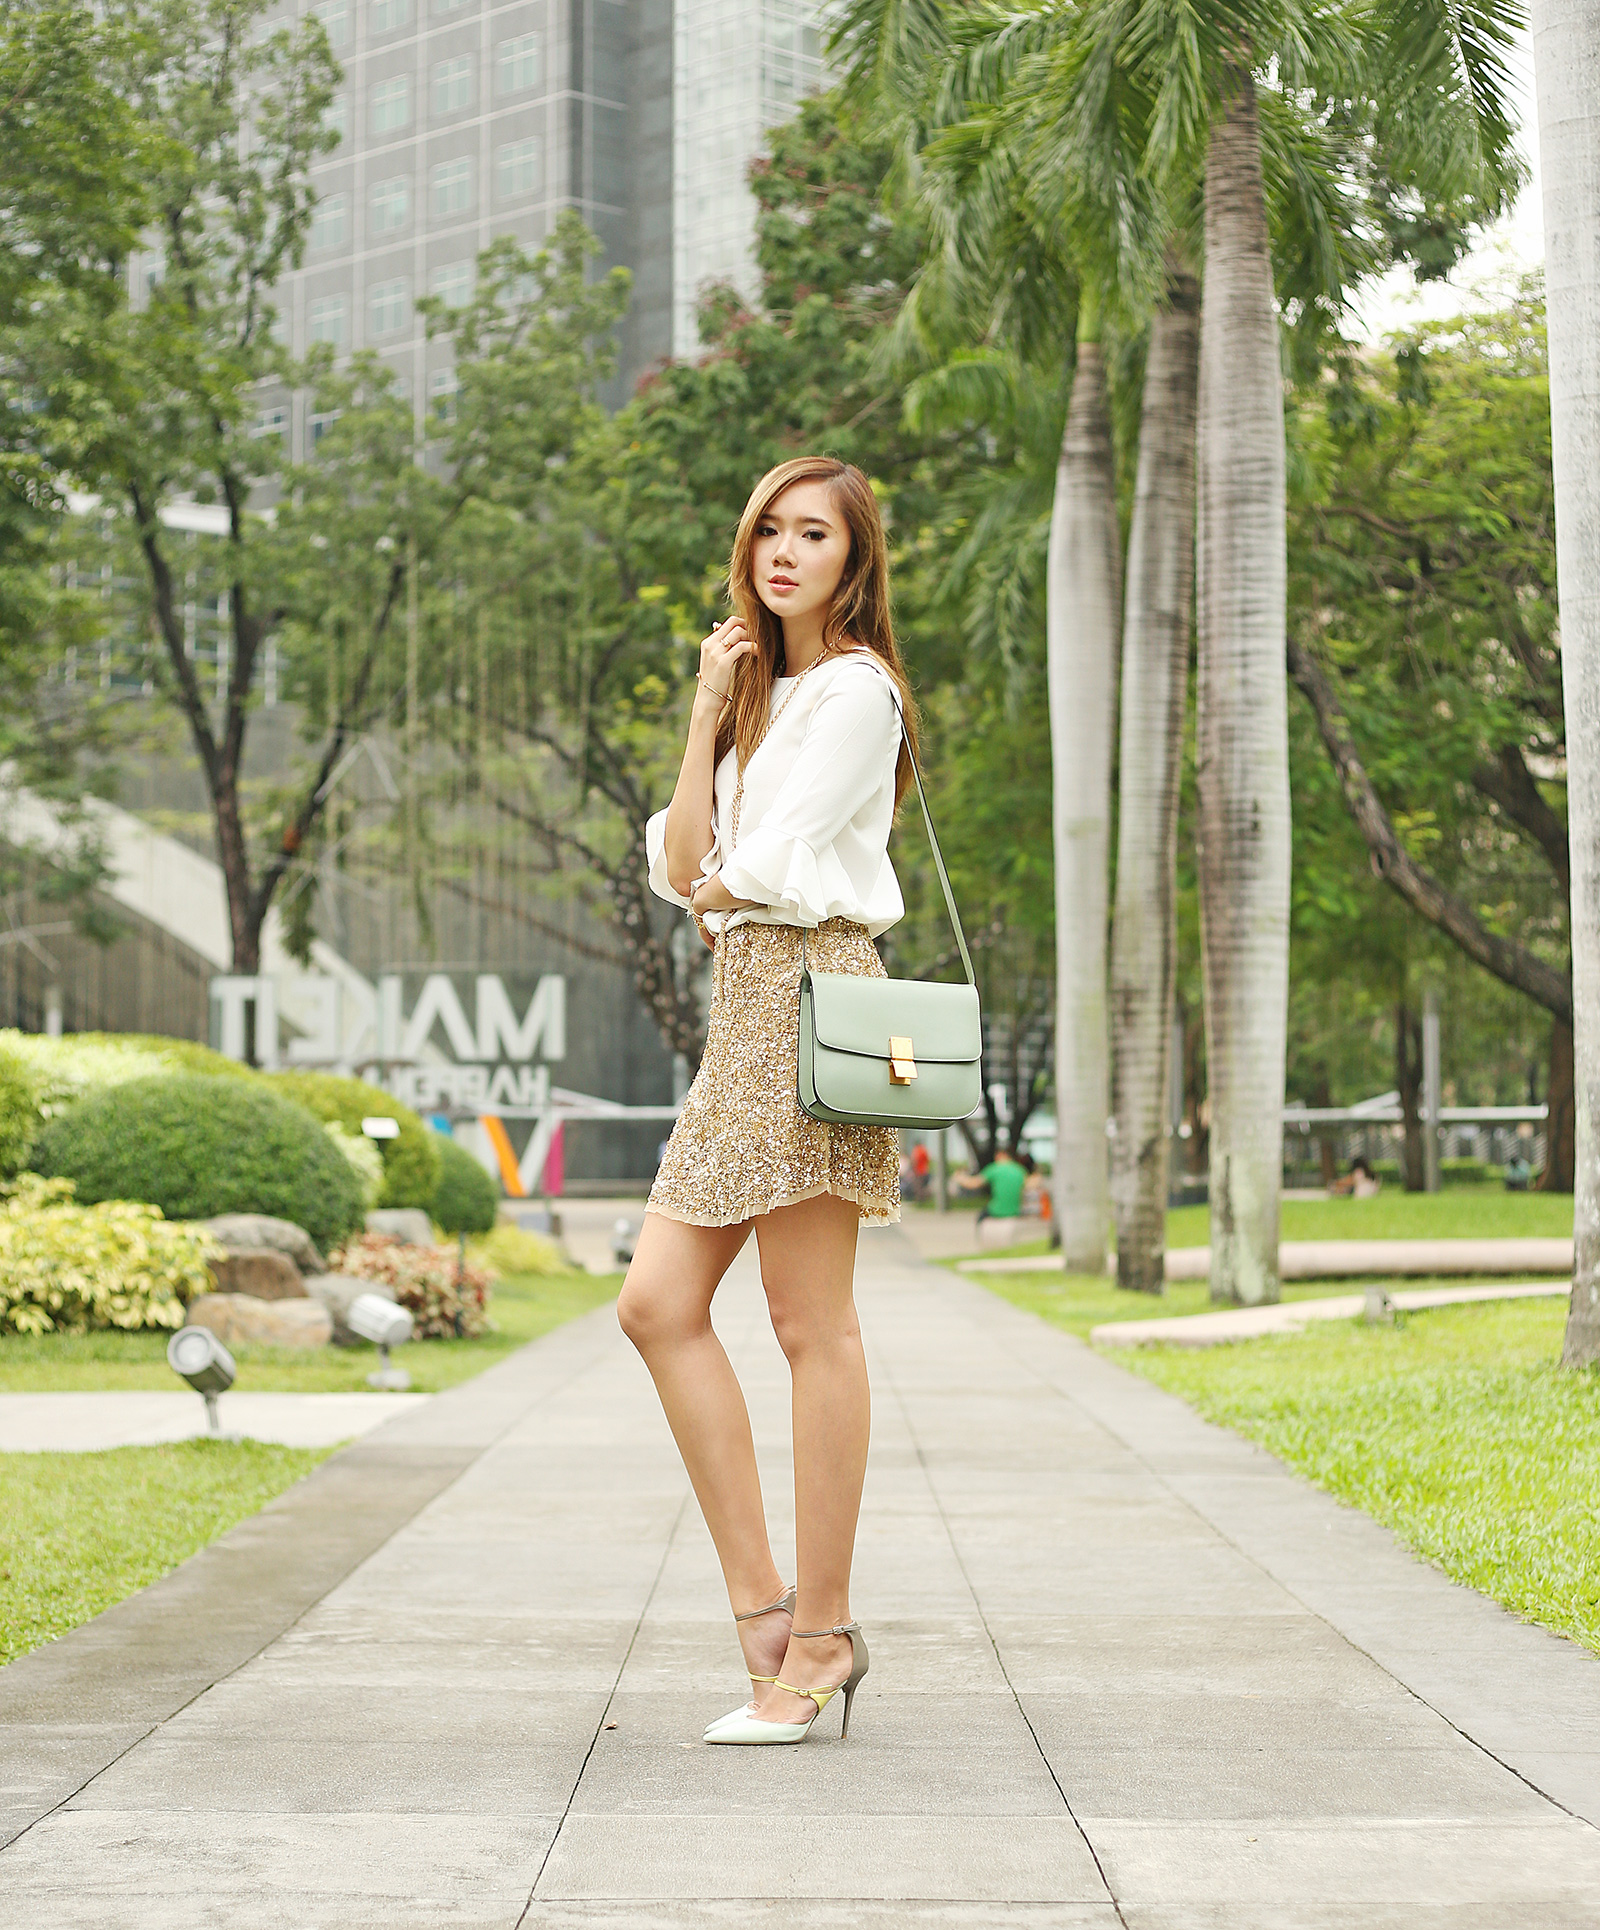 Romwe top, Zara skirt, Celine bag, Jimmy Choo heels | www.itscamilleco.com